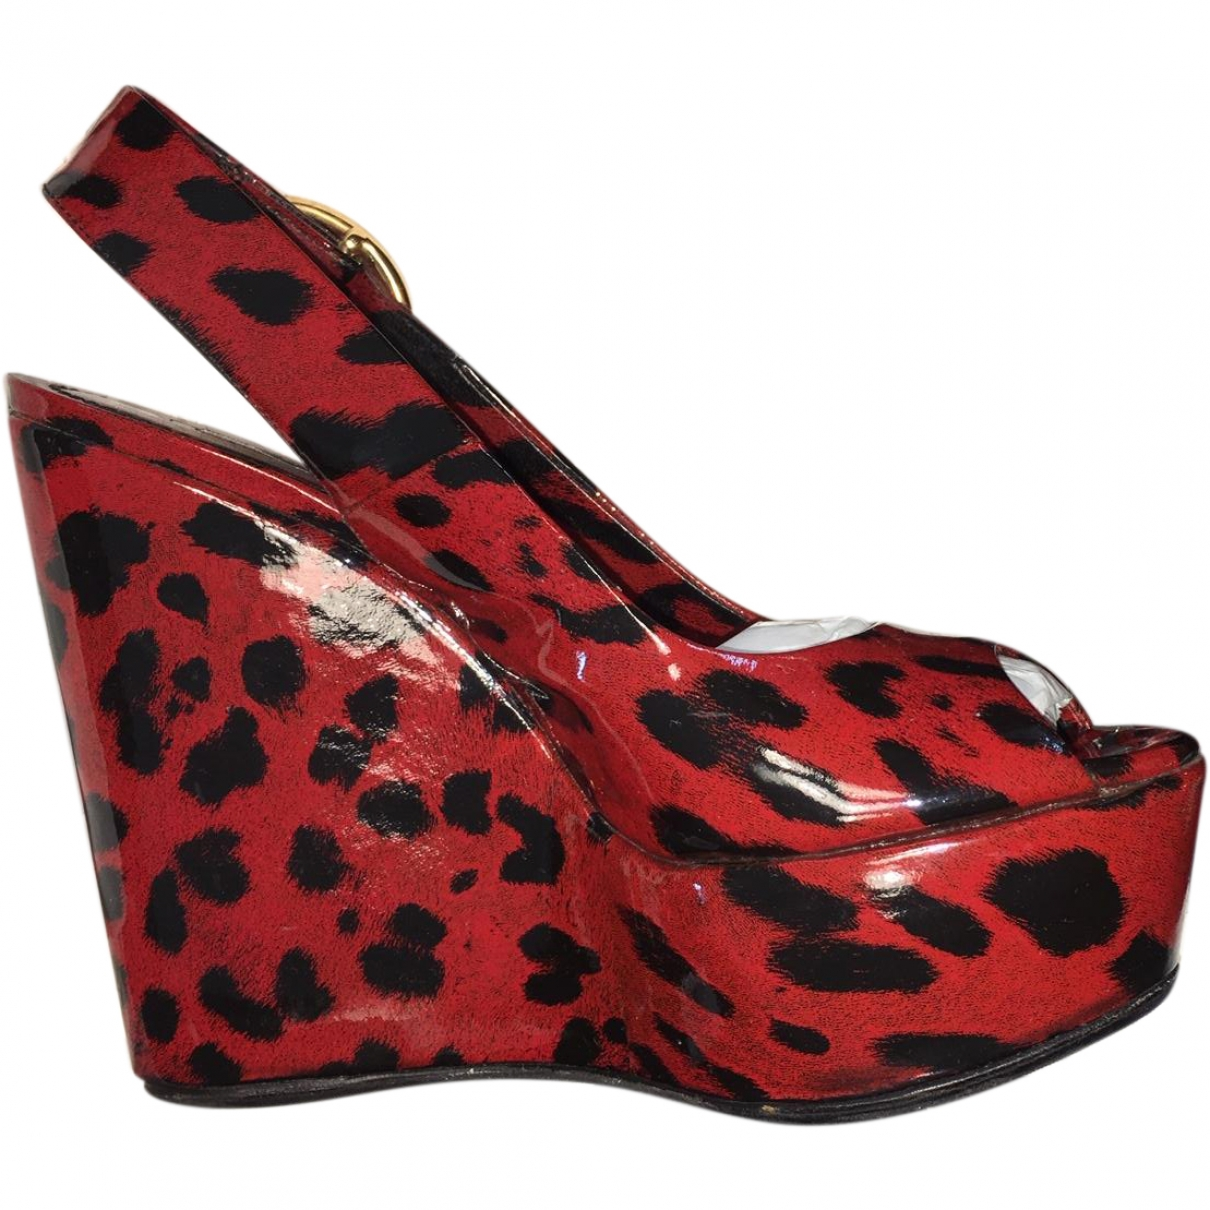 Dolce & Gabbana \N Red Patent leather Sandals for Women 37 EU